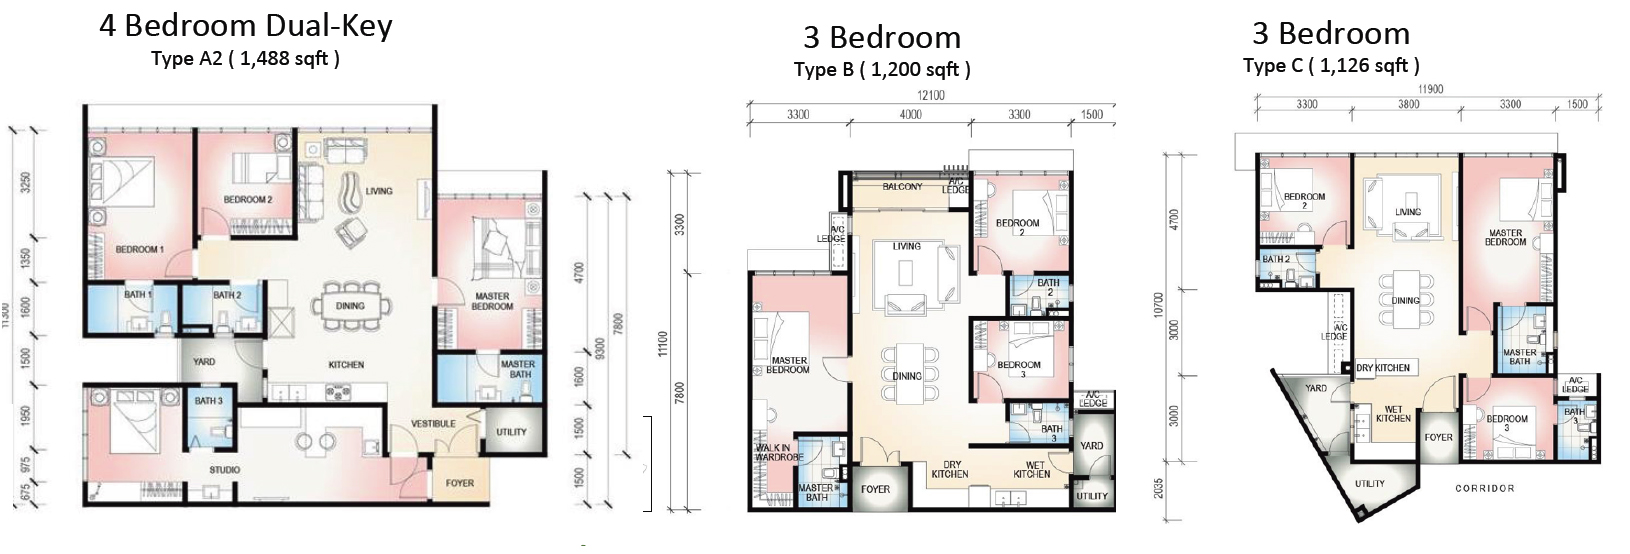 Botanika Floor Plan Singapore New Launch 187 6100 0601